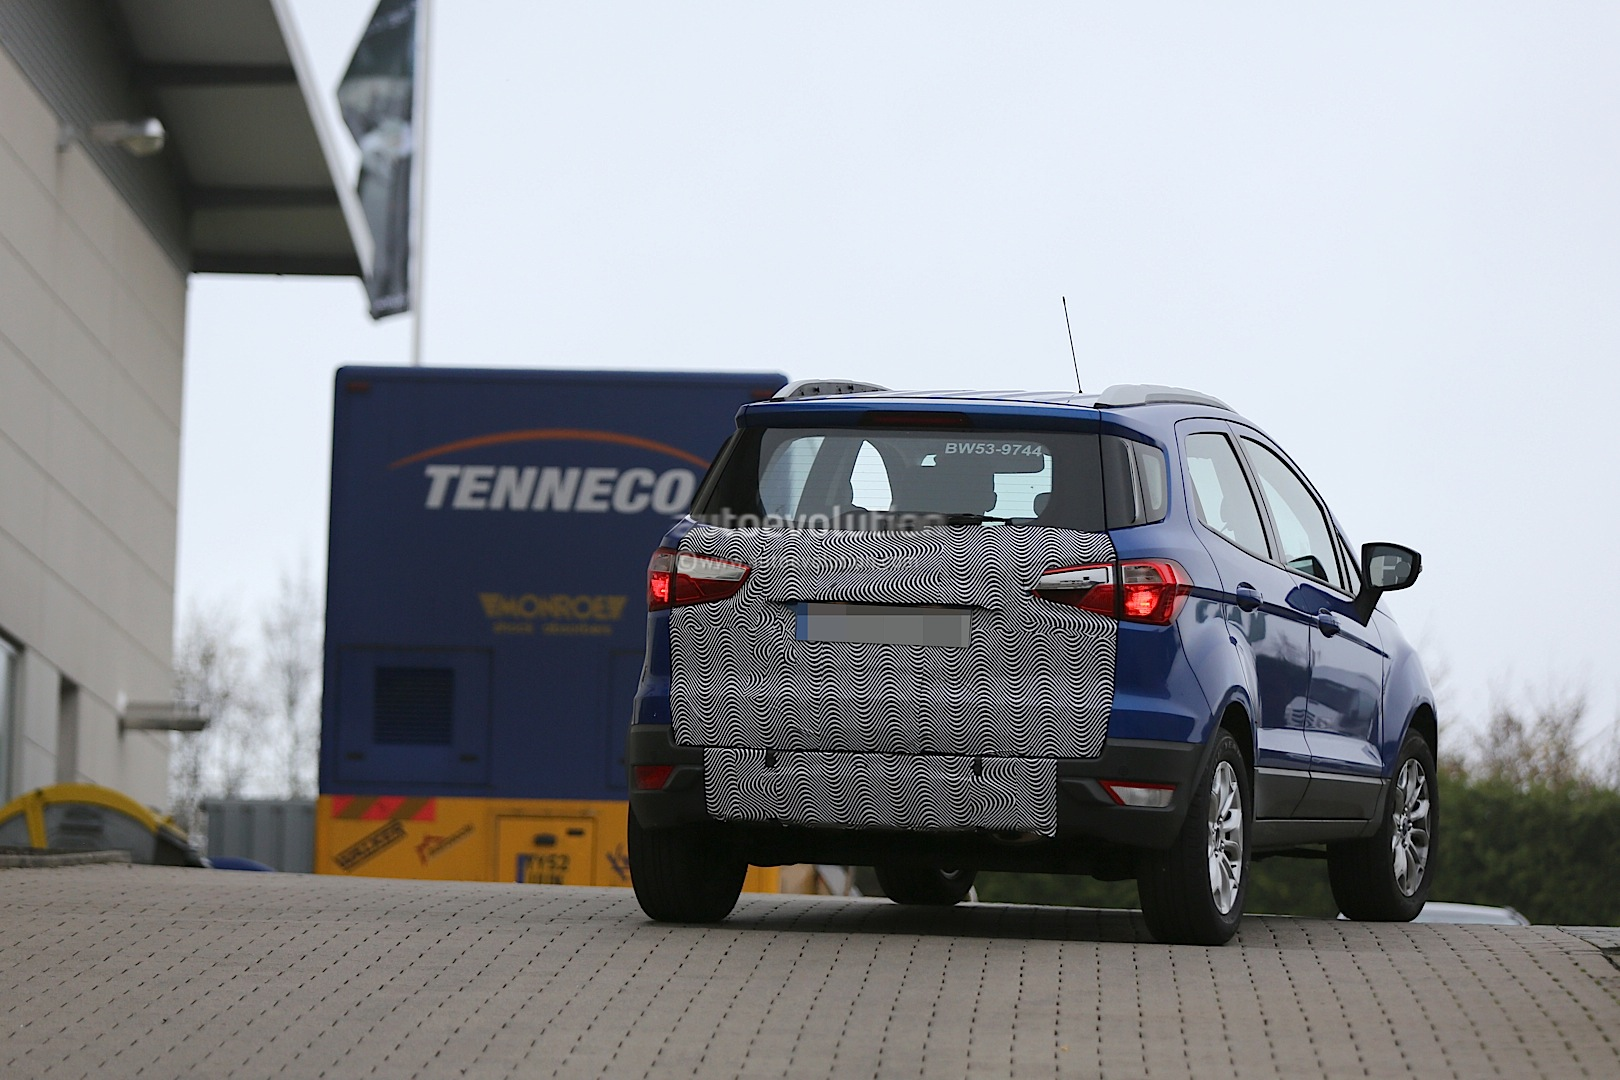 2015 Ford EcoSport drops the spare wheel on the bootlid